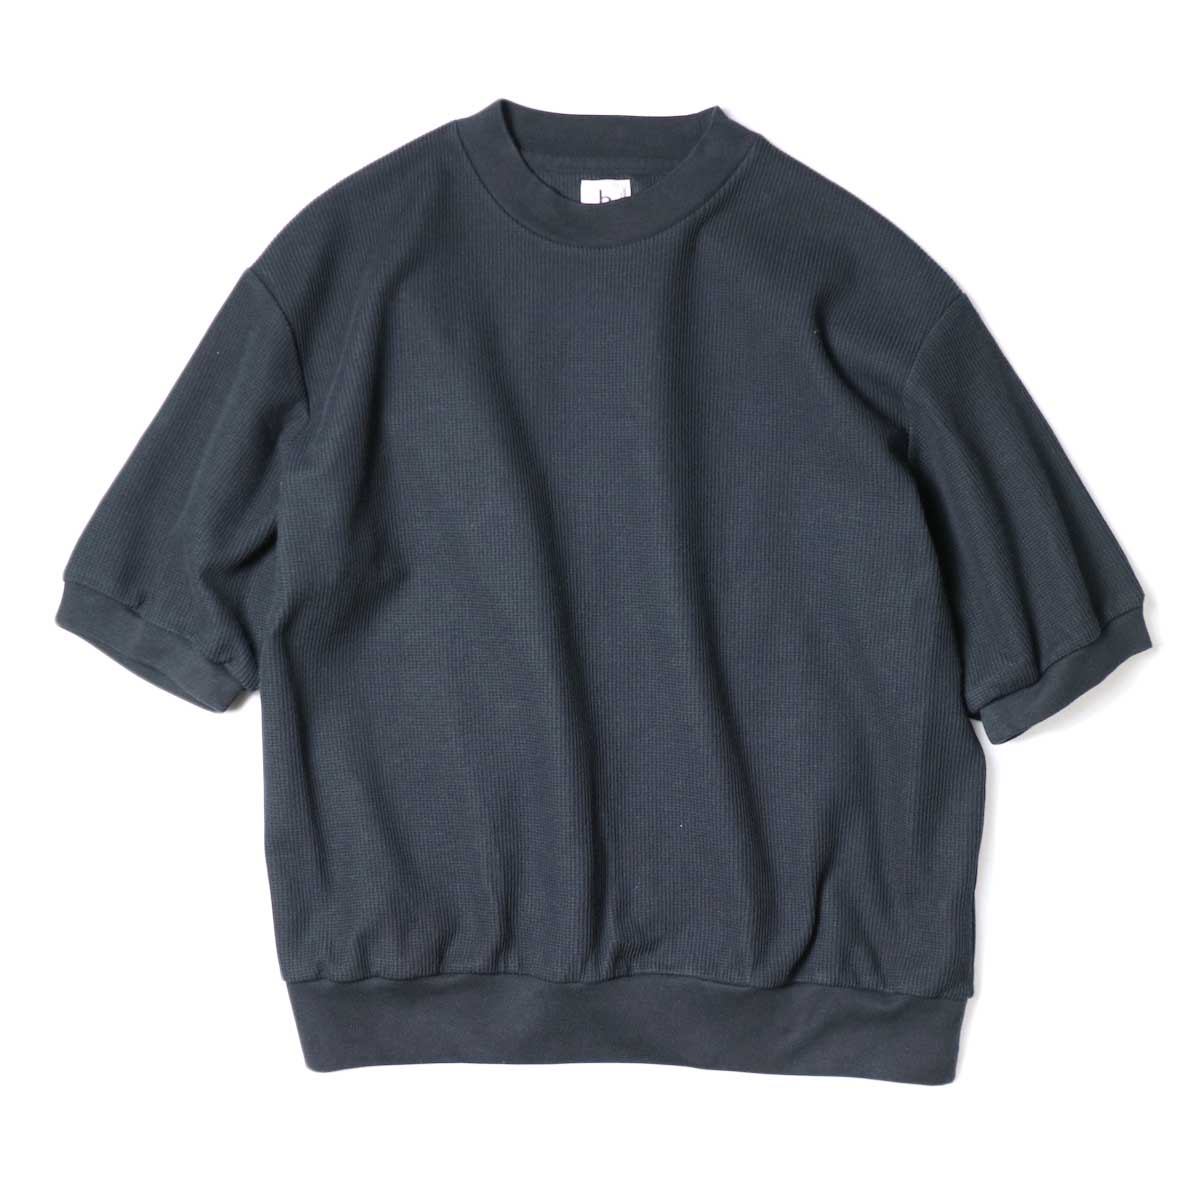 blurhms / Rough&Smooth Thermal Pullover S/S (Black)